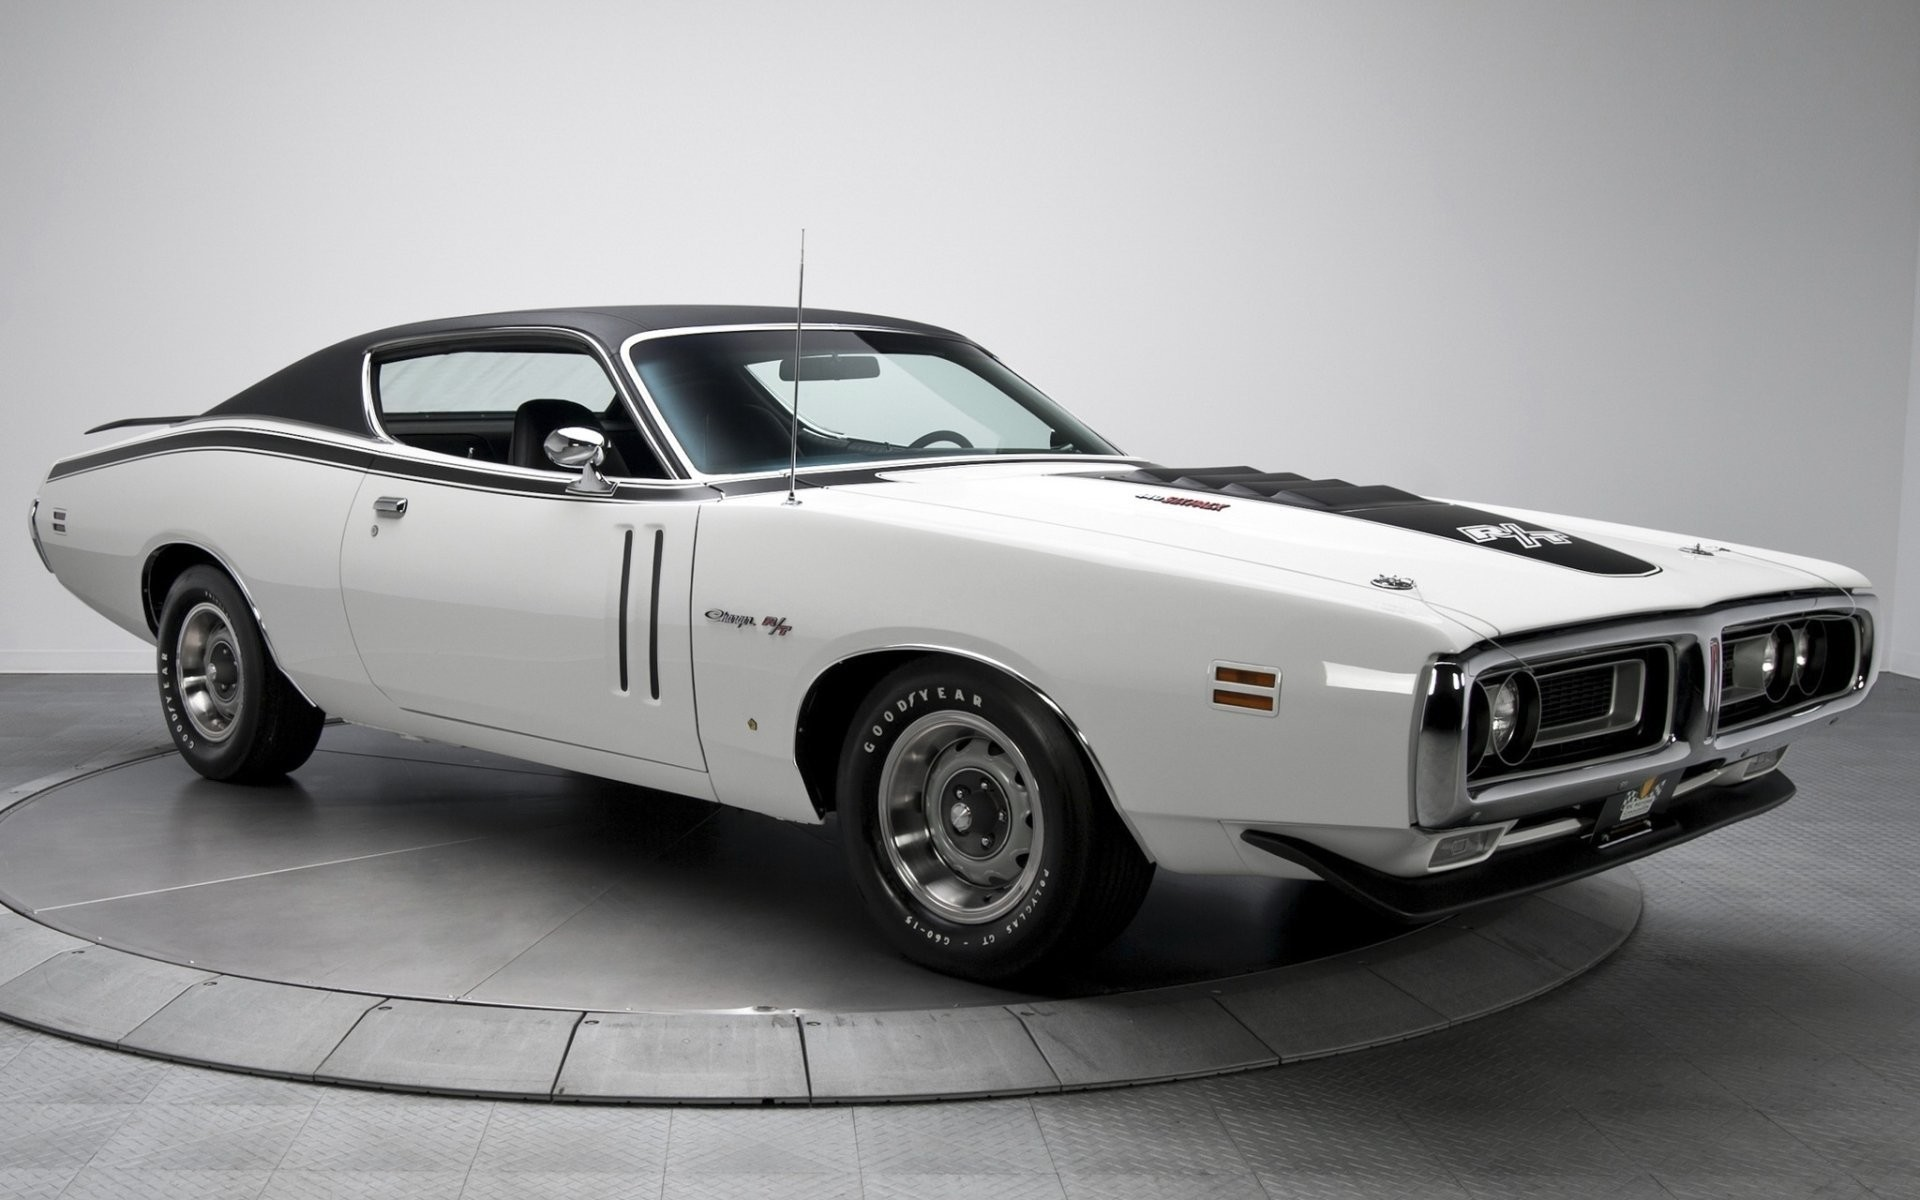 dodge charger r t six-pack 1970 dodge chardzher front muscle car muscle car  background